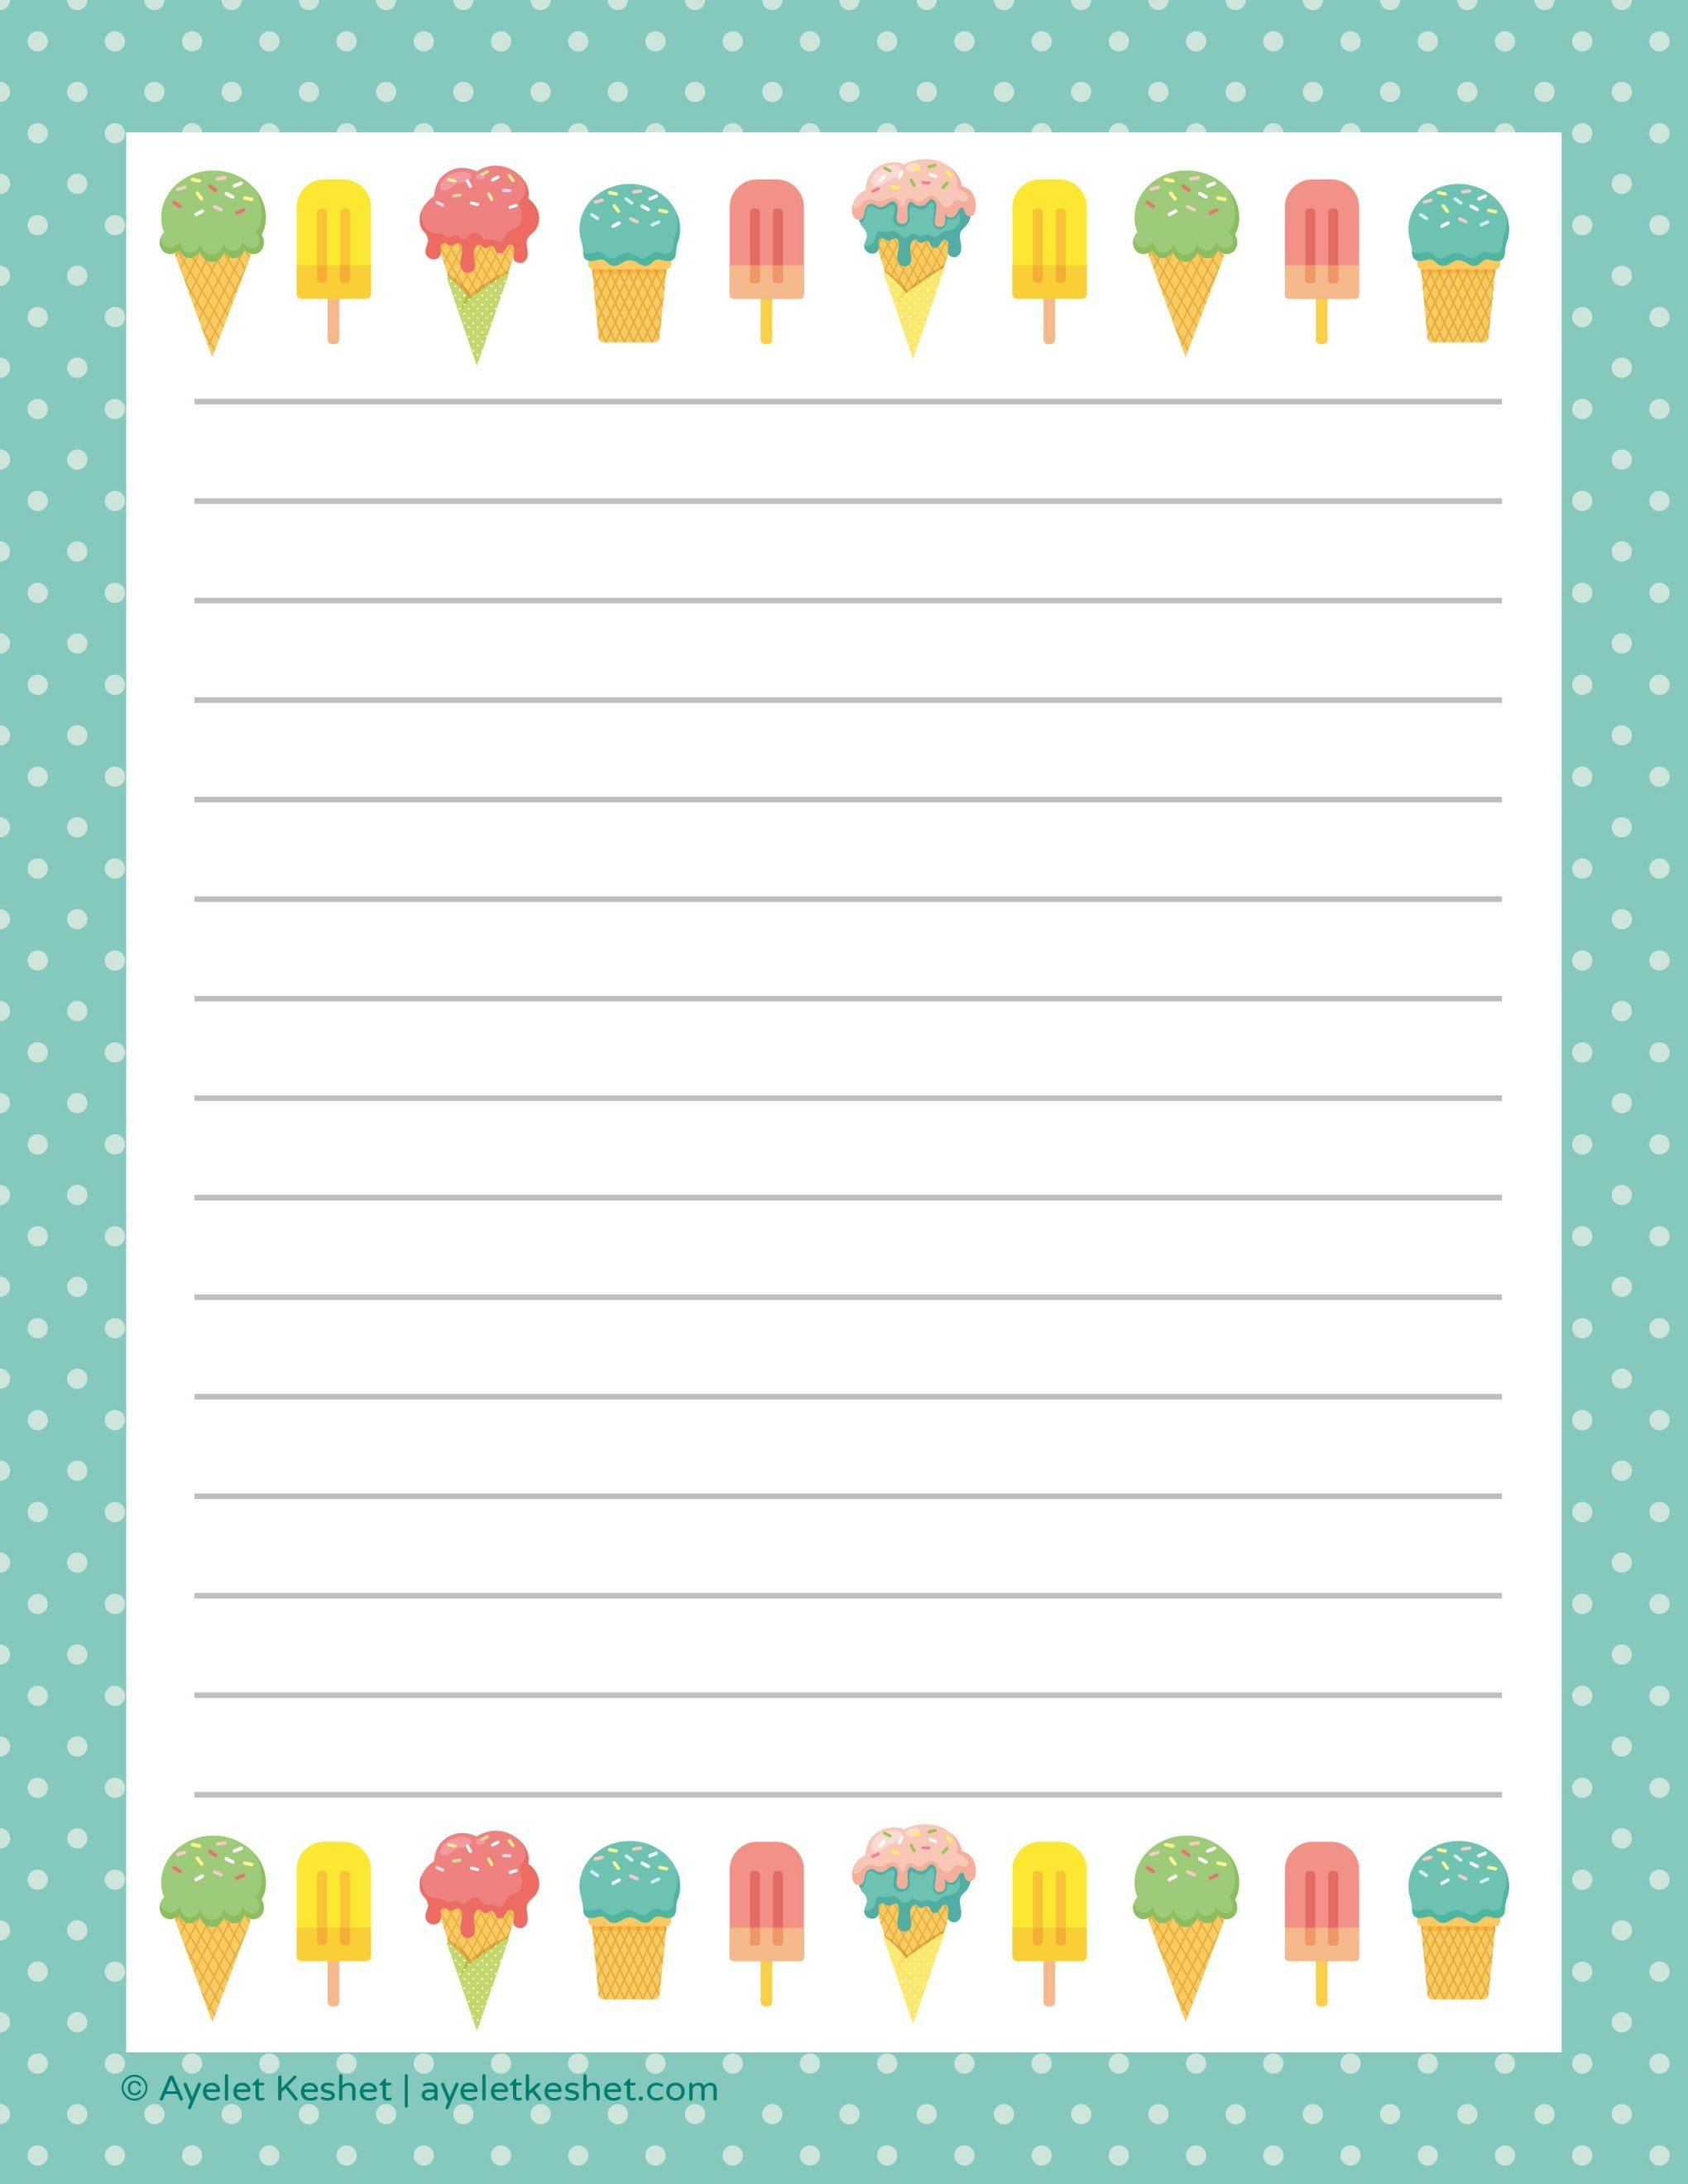 Free Printable Letter Paper   Printables To Go   Free Printable - Free Printable Stationery Writing Paper